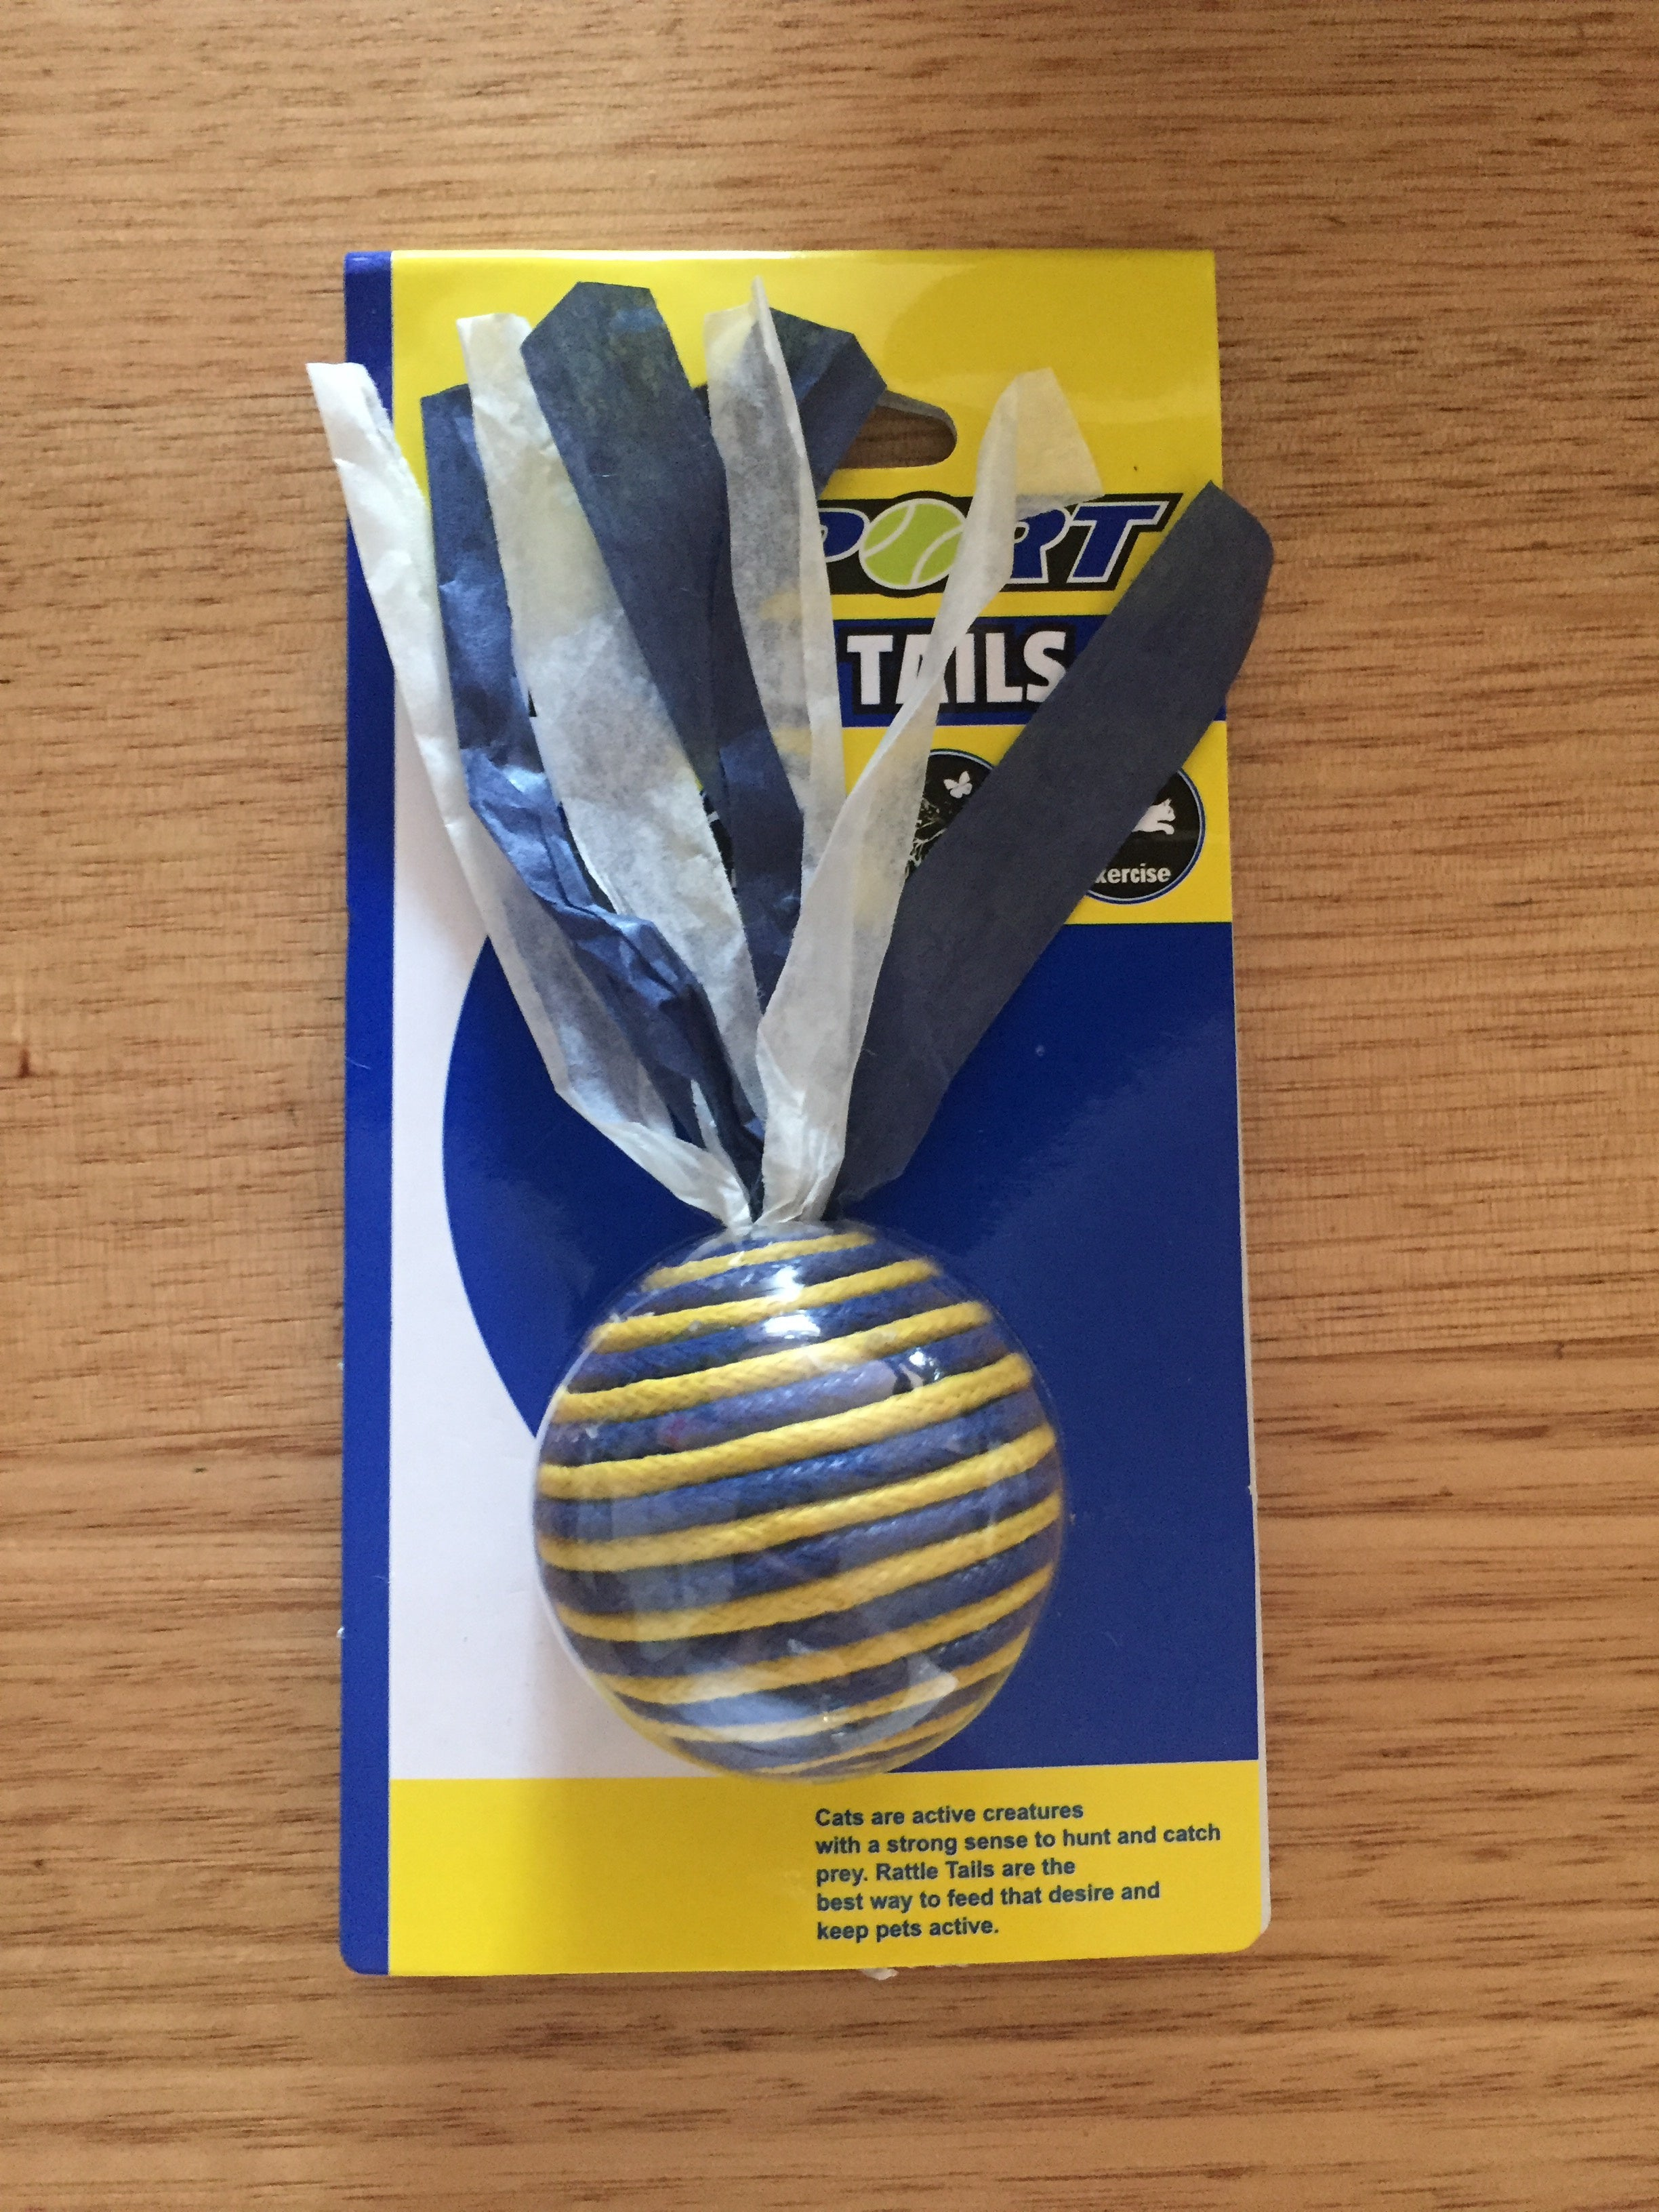 Kitty Rattle Tails Cat Toy